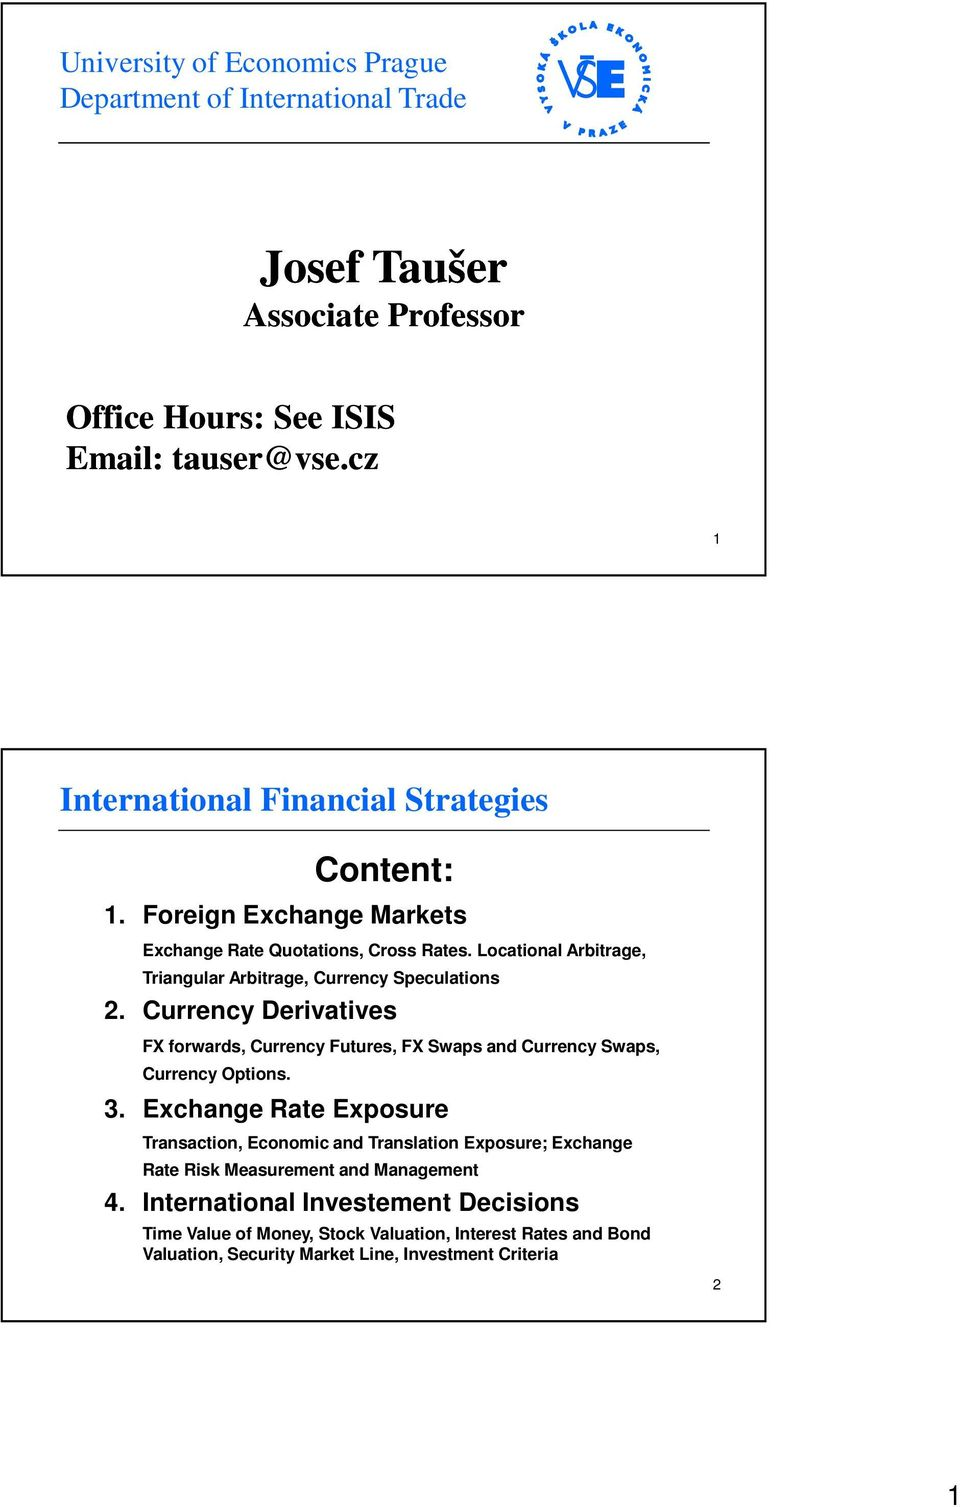 Locational Arbitrage, Triangular Arbitrage, Currency Speculations 2. Currency Derivatives FX forwards, Currency Futures, FX Swaps and Currency Swaps, Currency Options. 3.